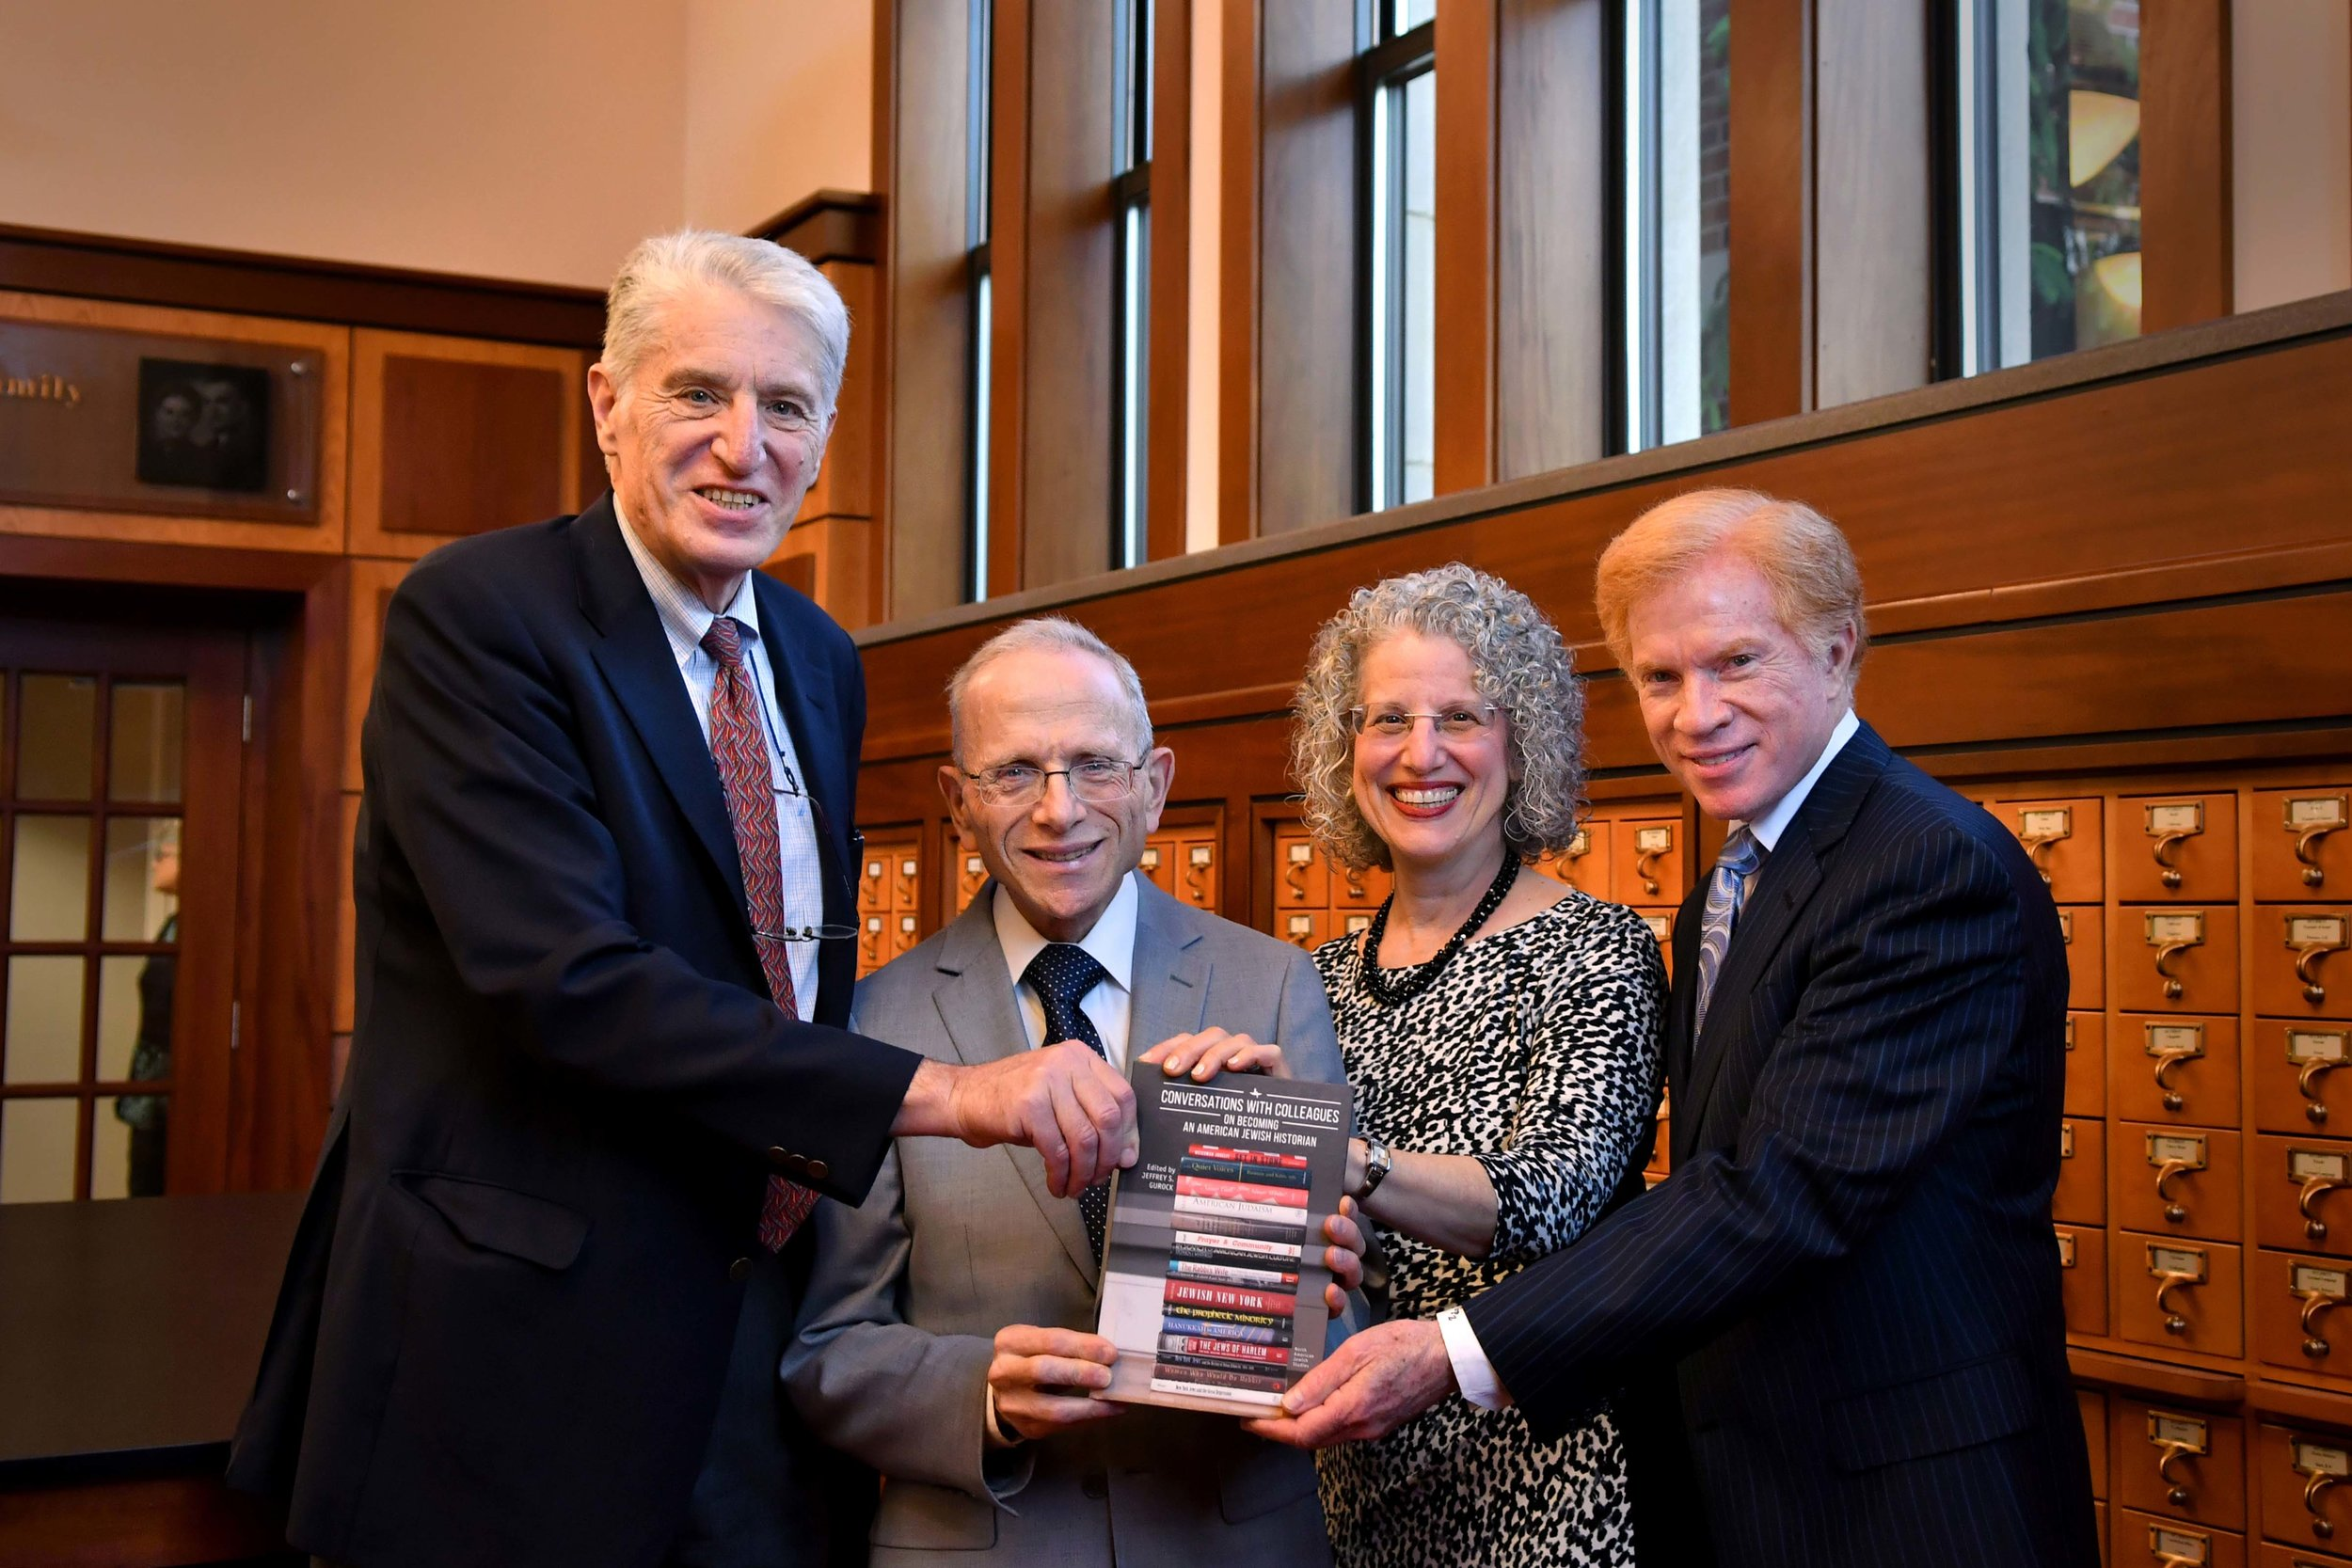 Jeffrey Gurock, Jonathan D. Sarna, Shuly Rubin Schwartz, and Gary P. Zola at the book launch for  Conversations with Colleagues , Jacob Rader Marcus Center of the American Jewish Archives, May 15, 2018